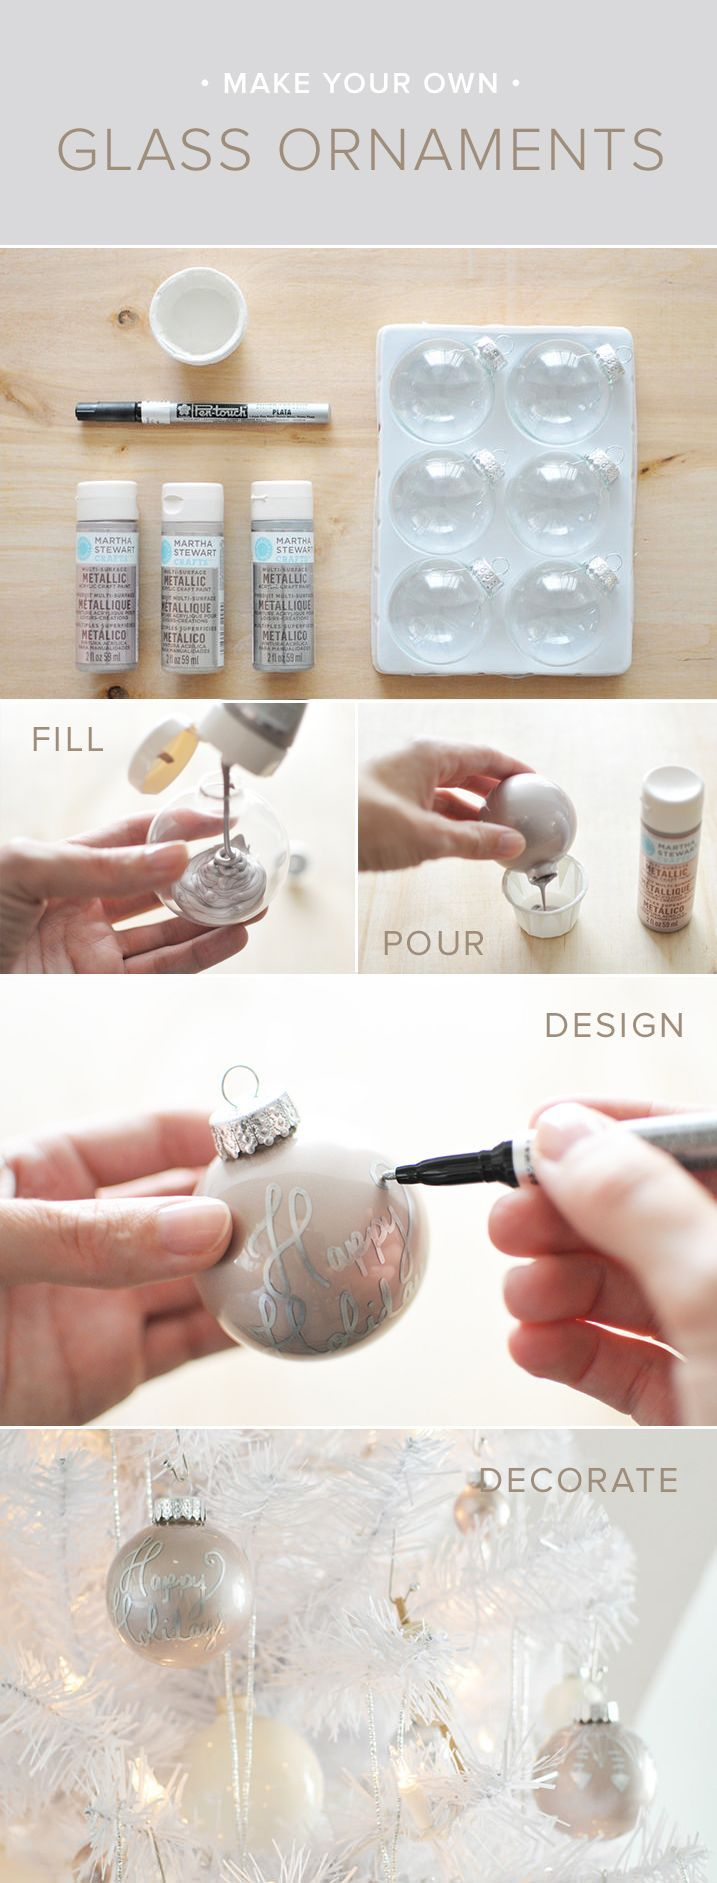 How to make your own glass ornaments pictures photos and How to make your own ornaments ideas